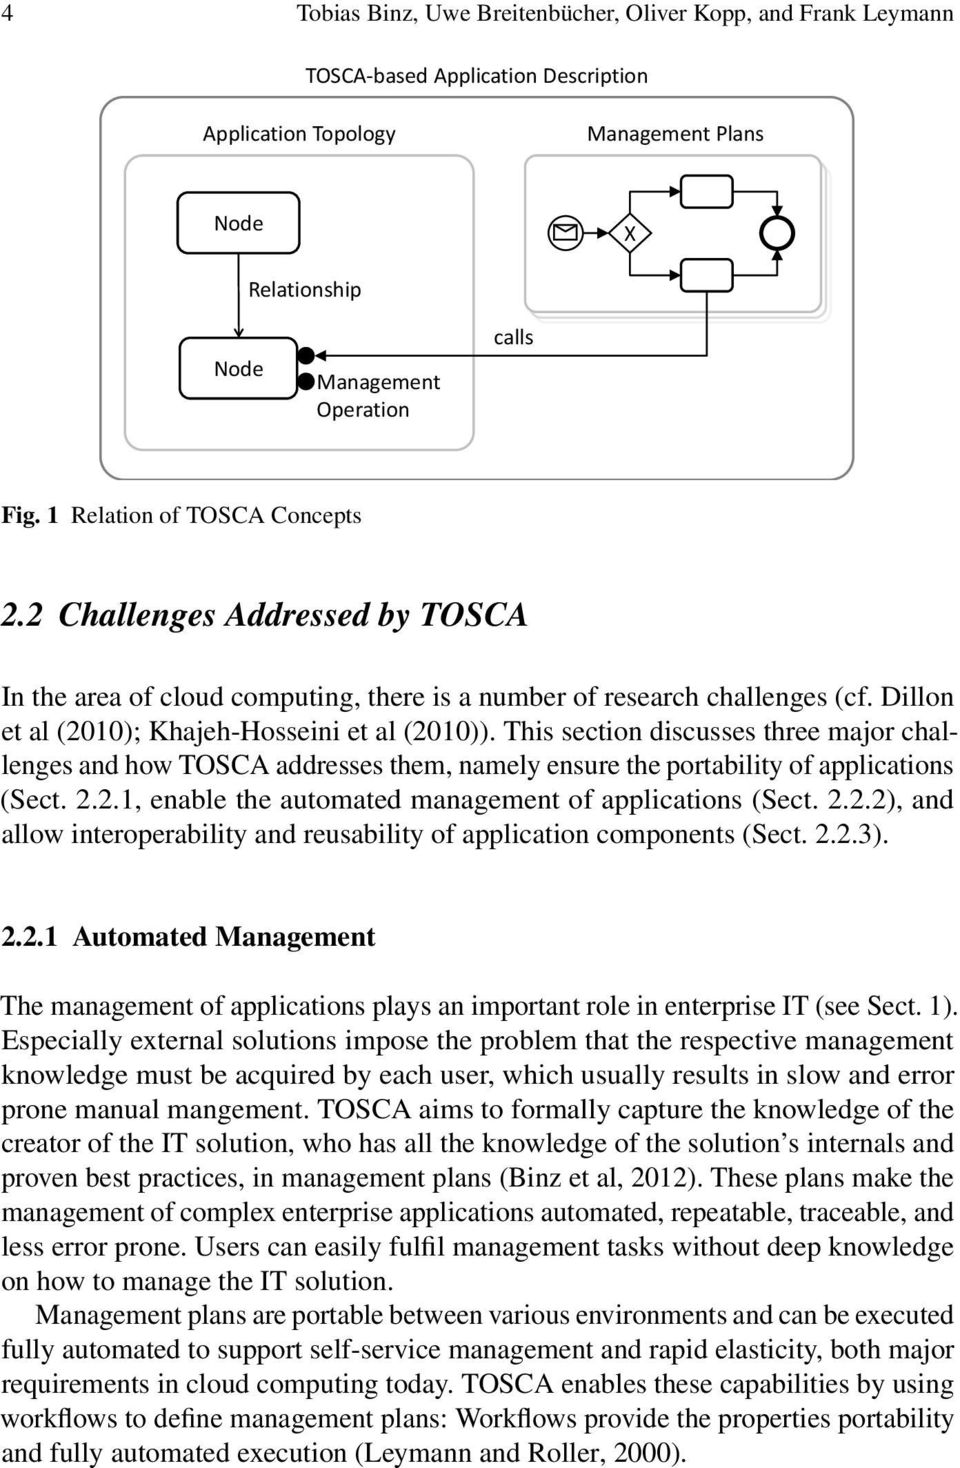 This section discusses three major challenges and how TOSCA addresses them, namely ensure the portability of applications (Sect. 2.